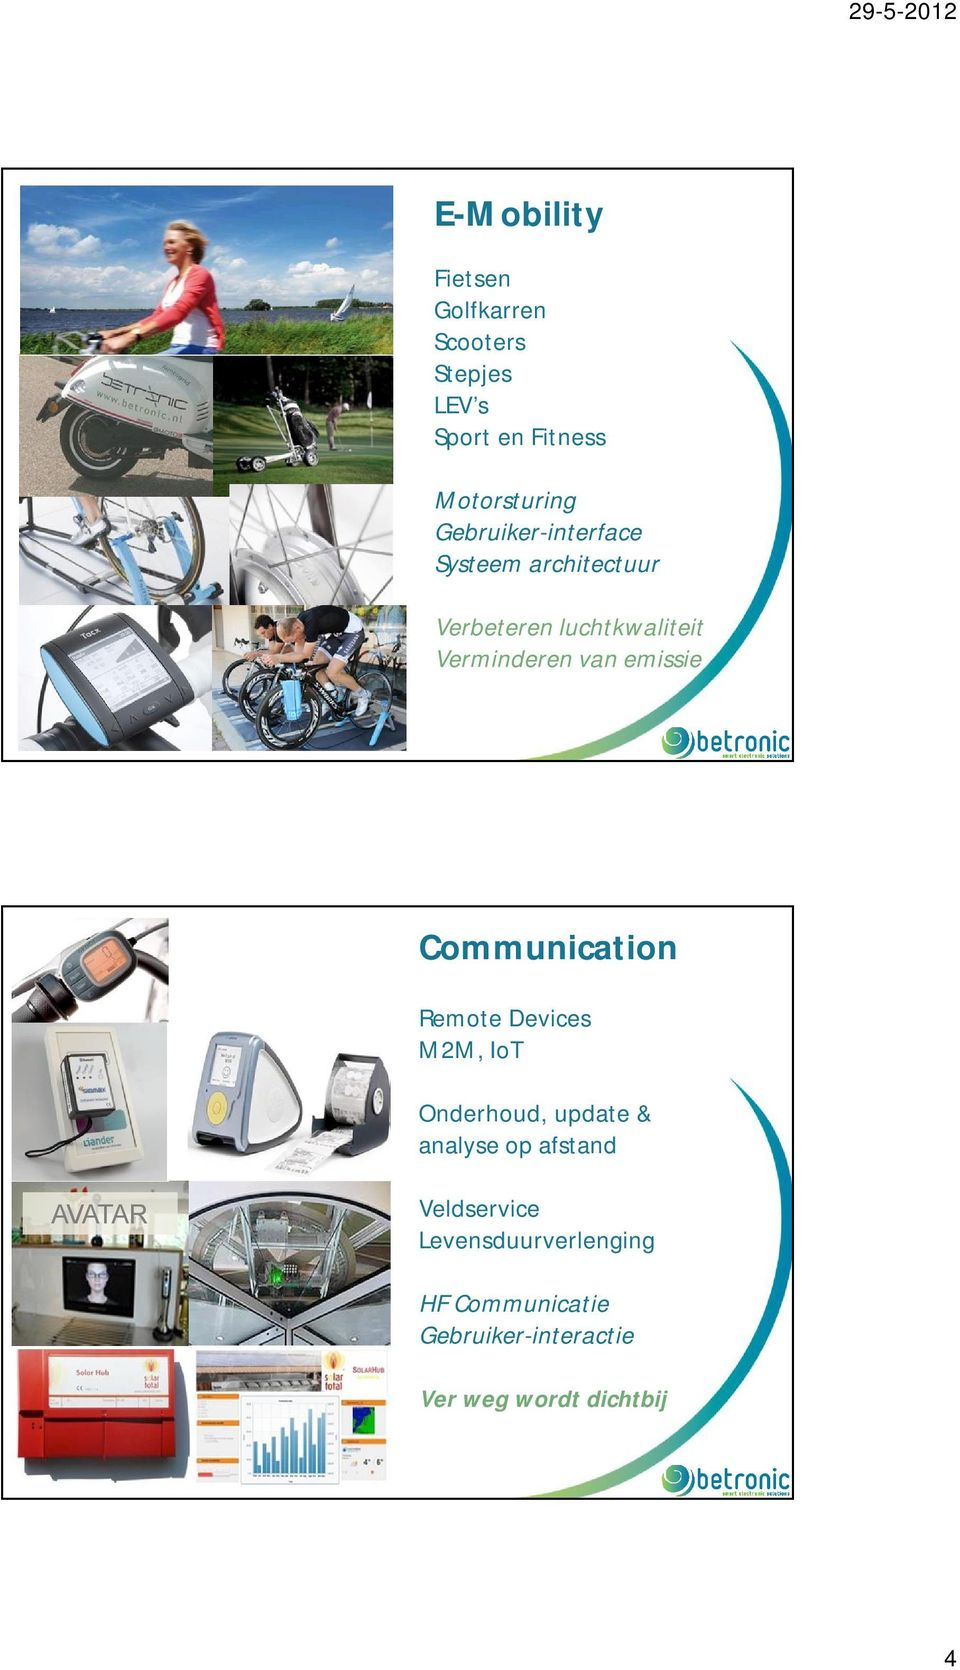 emissie Communication Remote Devices M2M, IoT Onderhoud, update & analyse op afstand